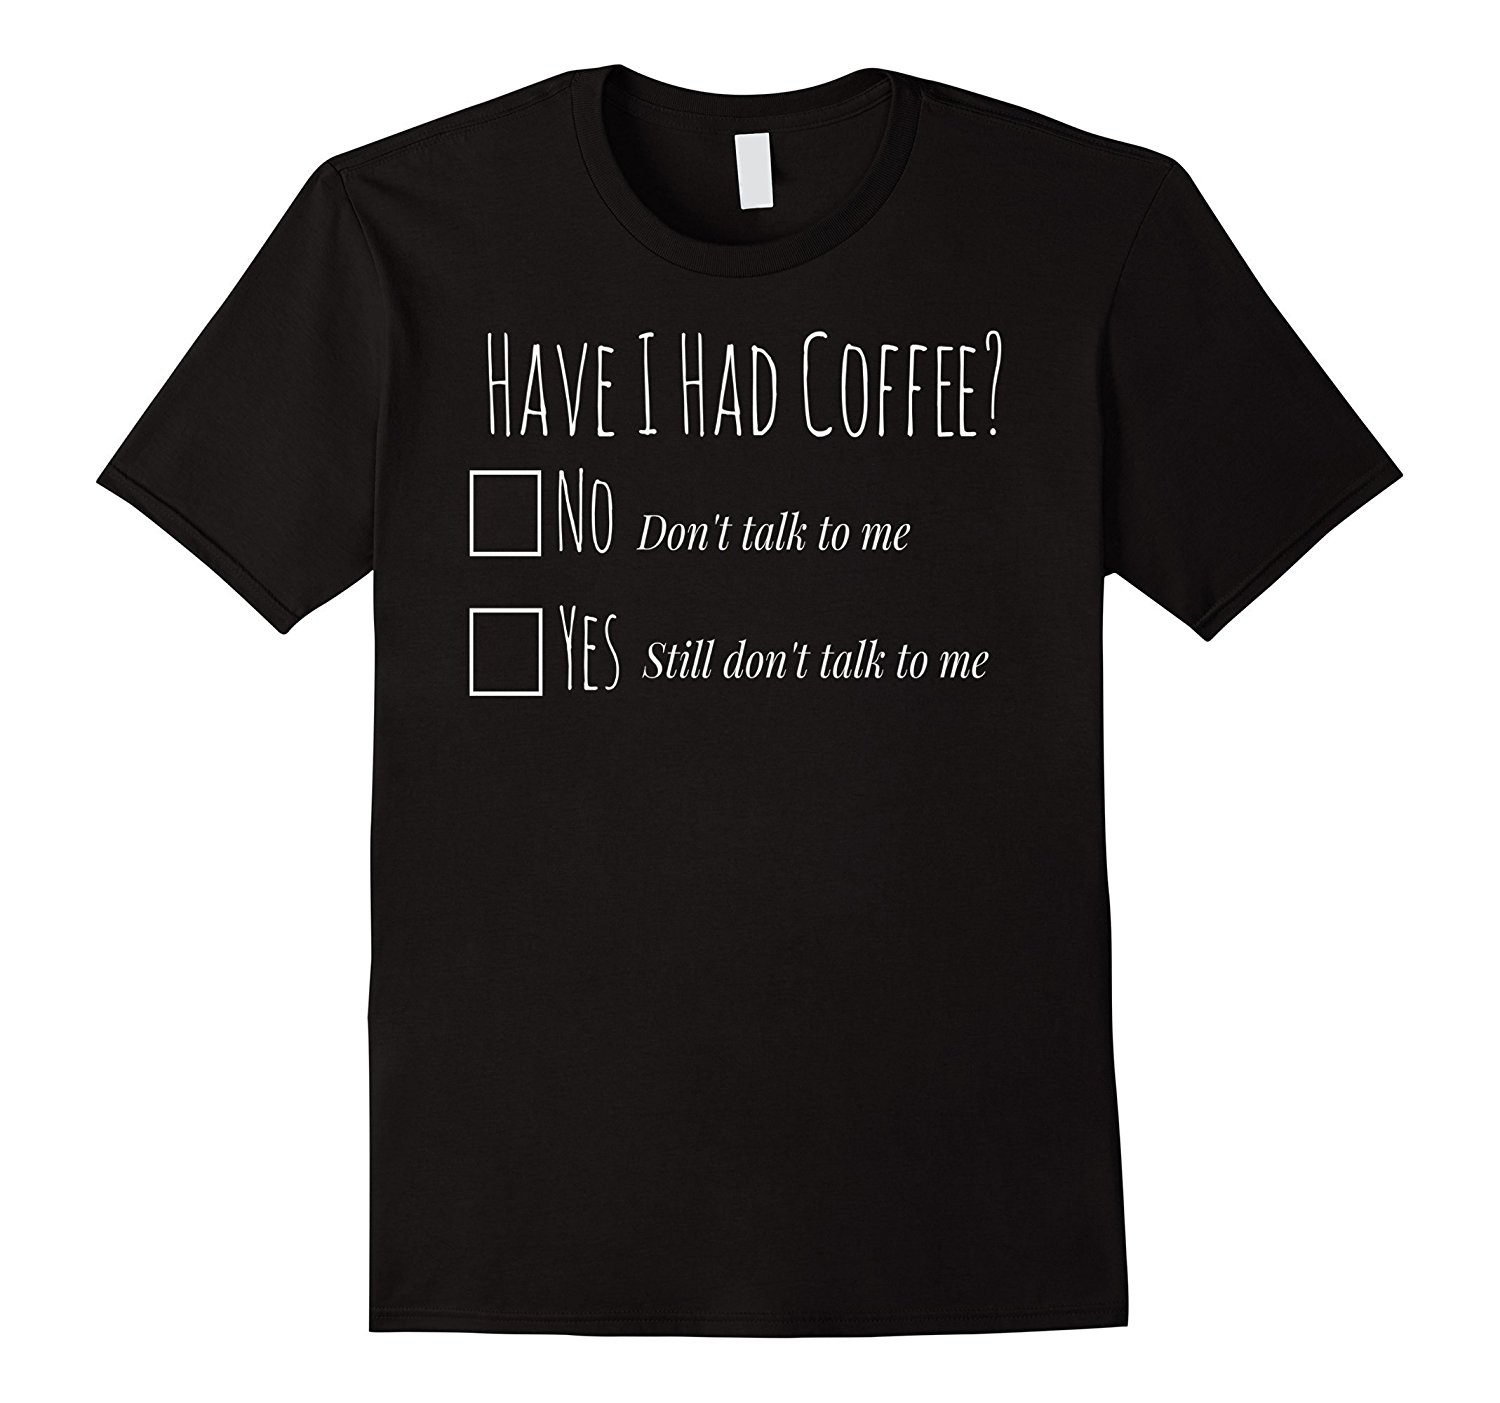 Have I Had Coffee: Men's And Women's Unisex Coffee Lover Tee Crazy Female T-Shirt 2017 Summer Harajuku Brand T Shirt